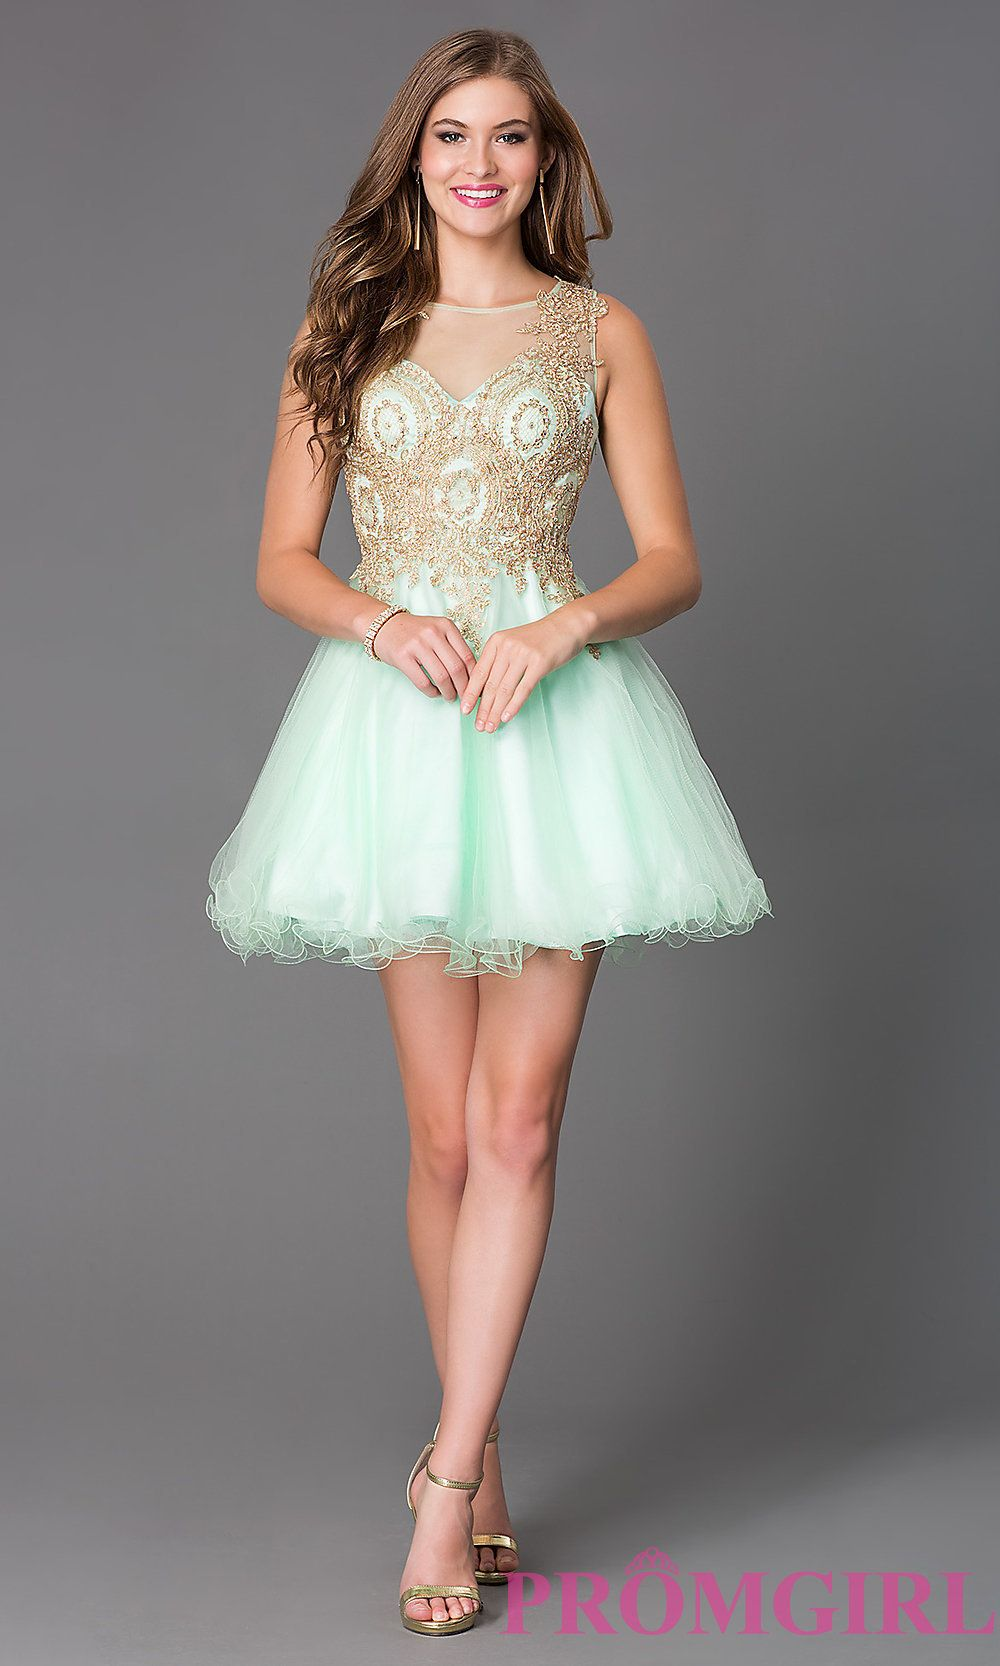 Prom dresses celebrity dresses sexy evening gowns short